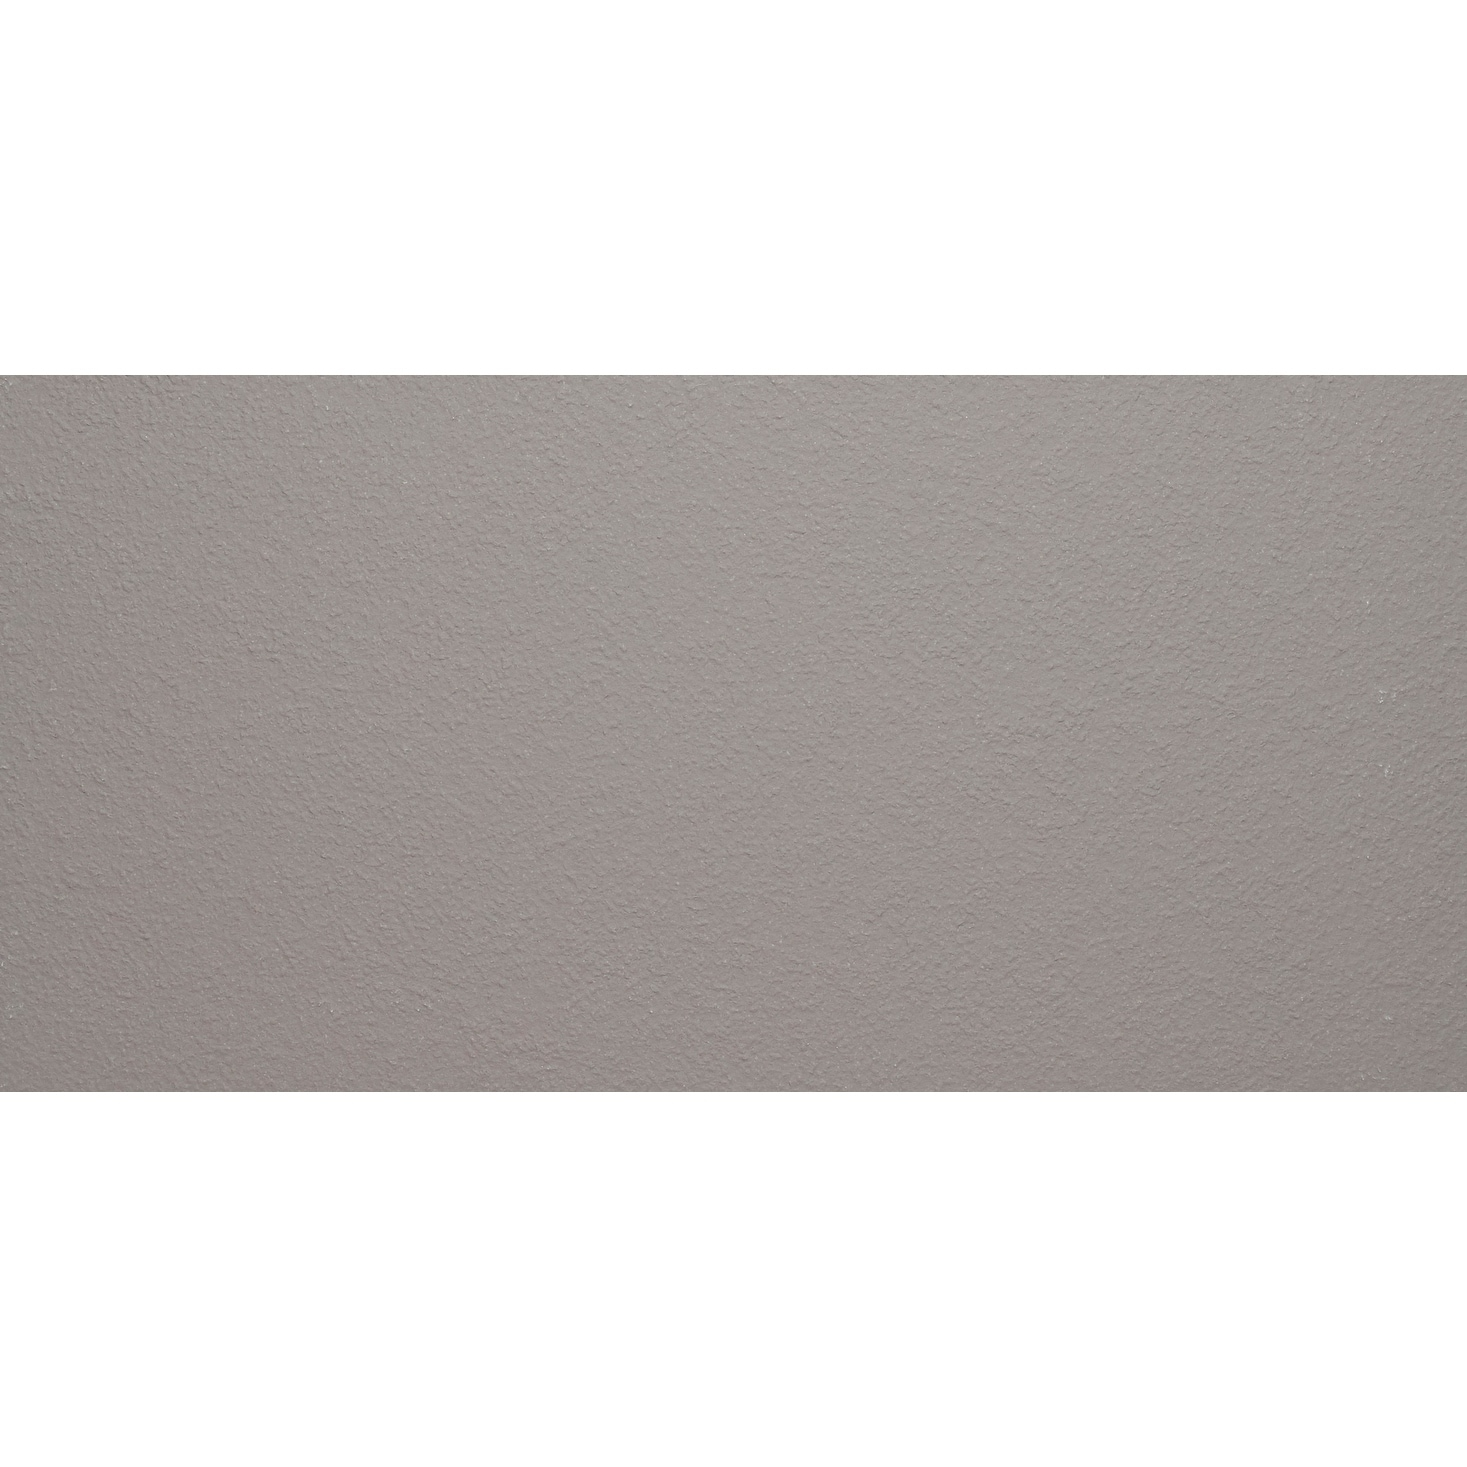 contemporary cement visual 12x24 inch textured floor tile in trend grey 12x24